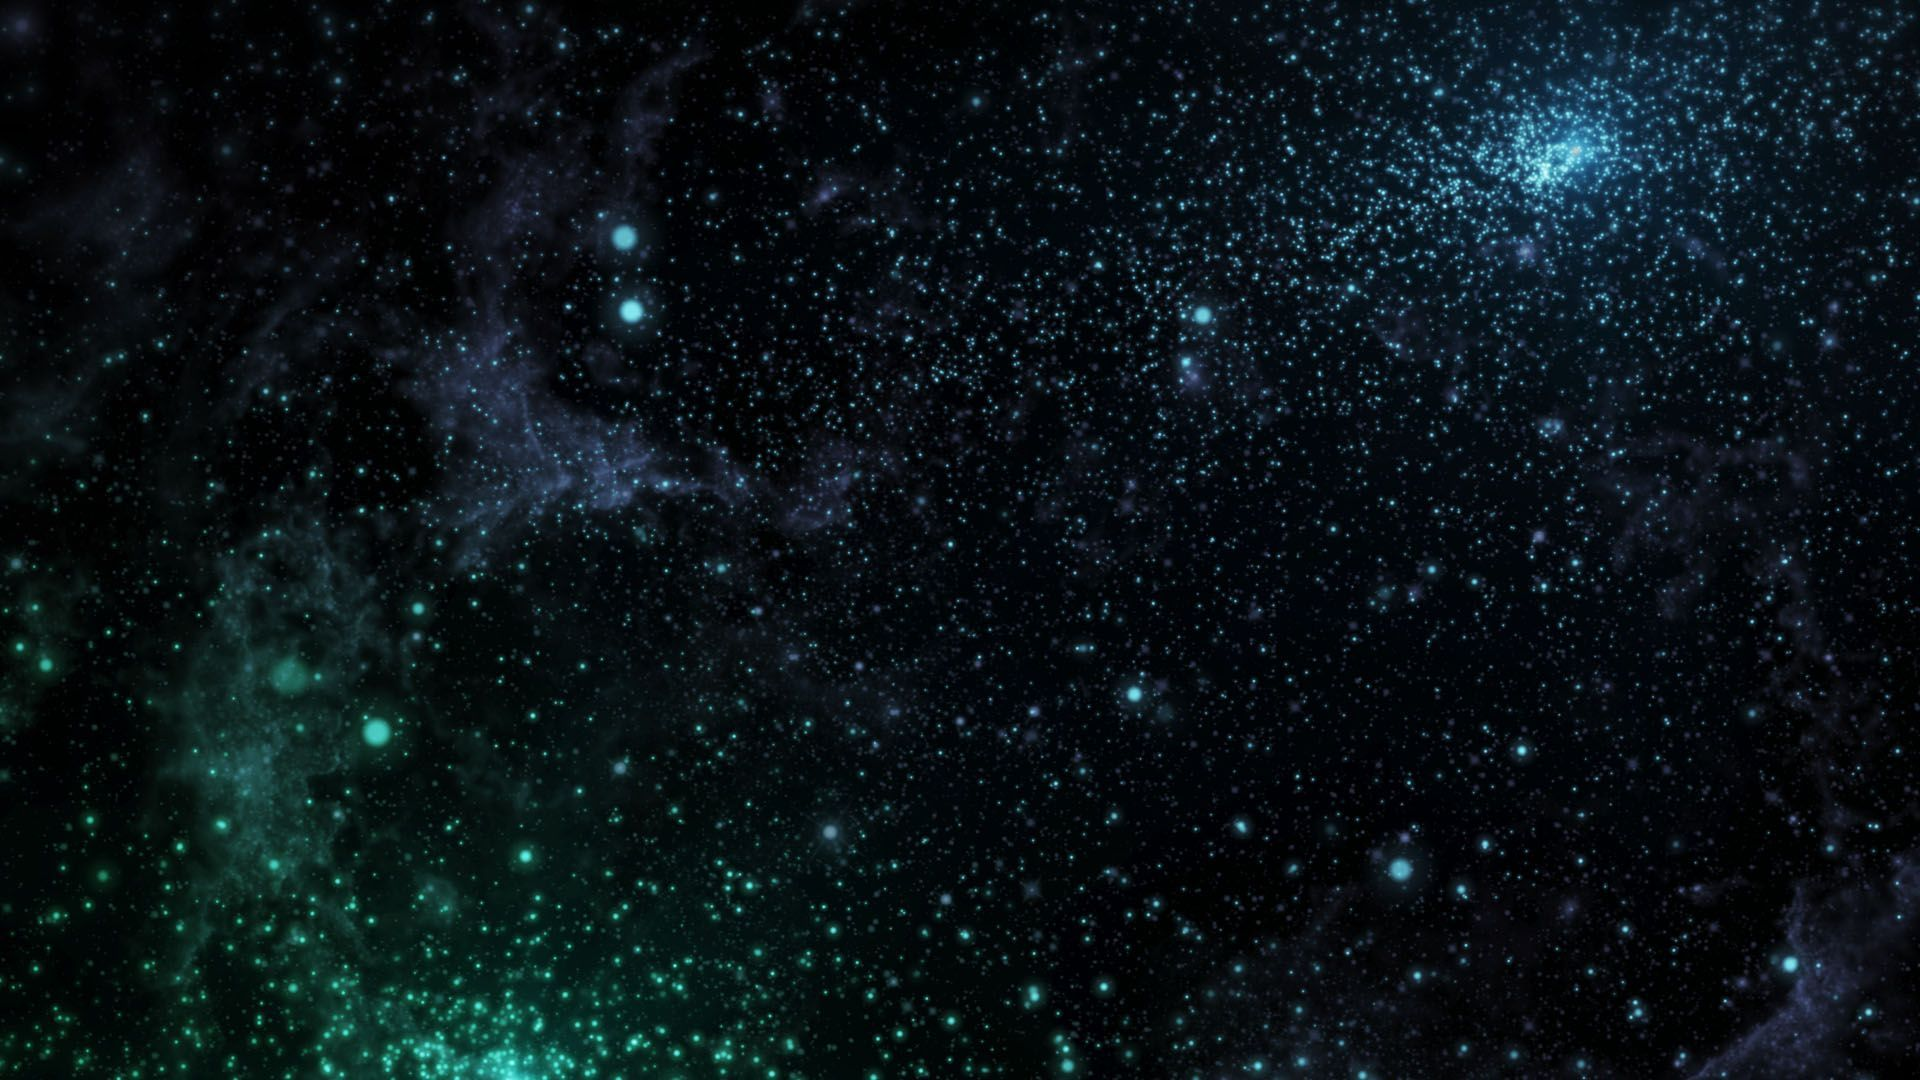 Real Hd Space Wallpapers Top Free Real Hd Space